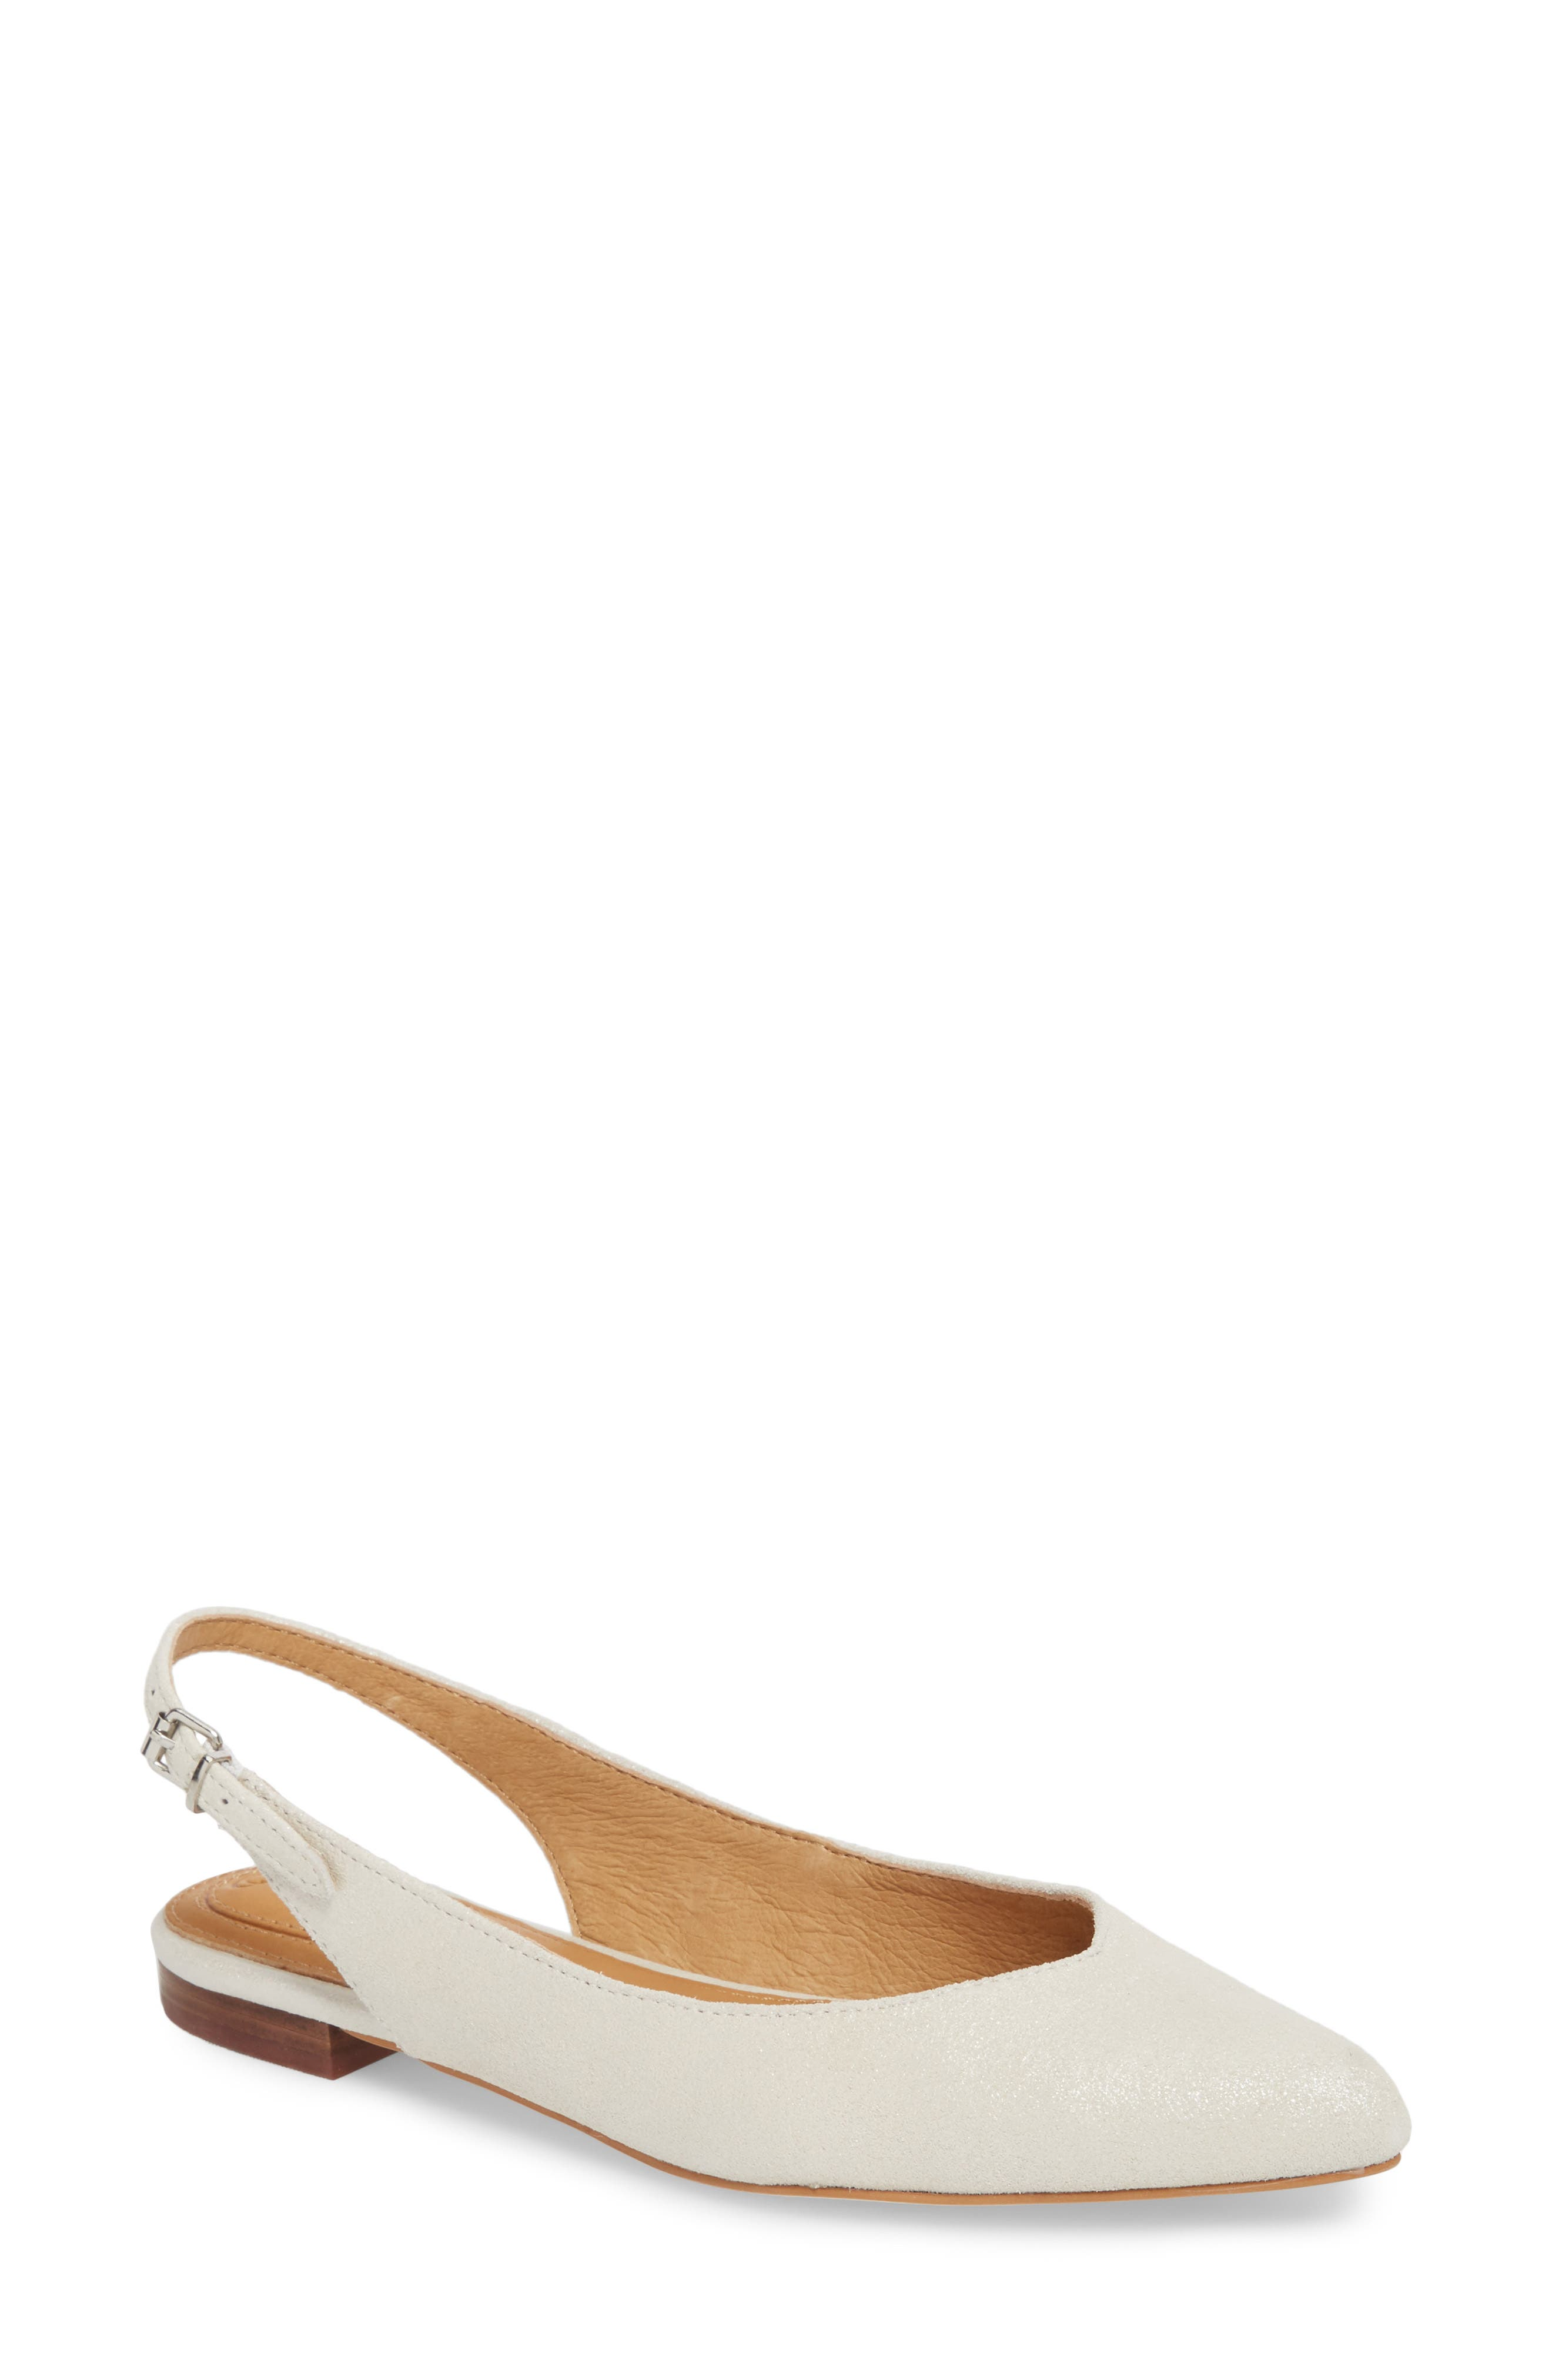 Jackey Slingback Flat,                             Main thumbnail 1, color,                             PLATINUM LEATHER